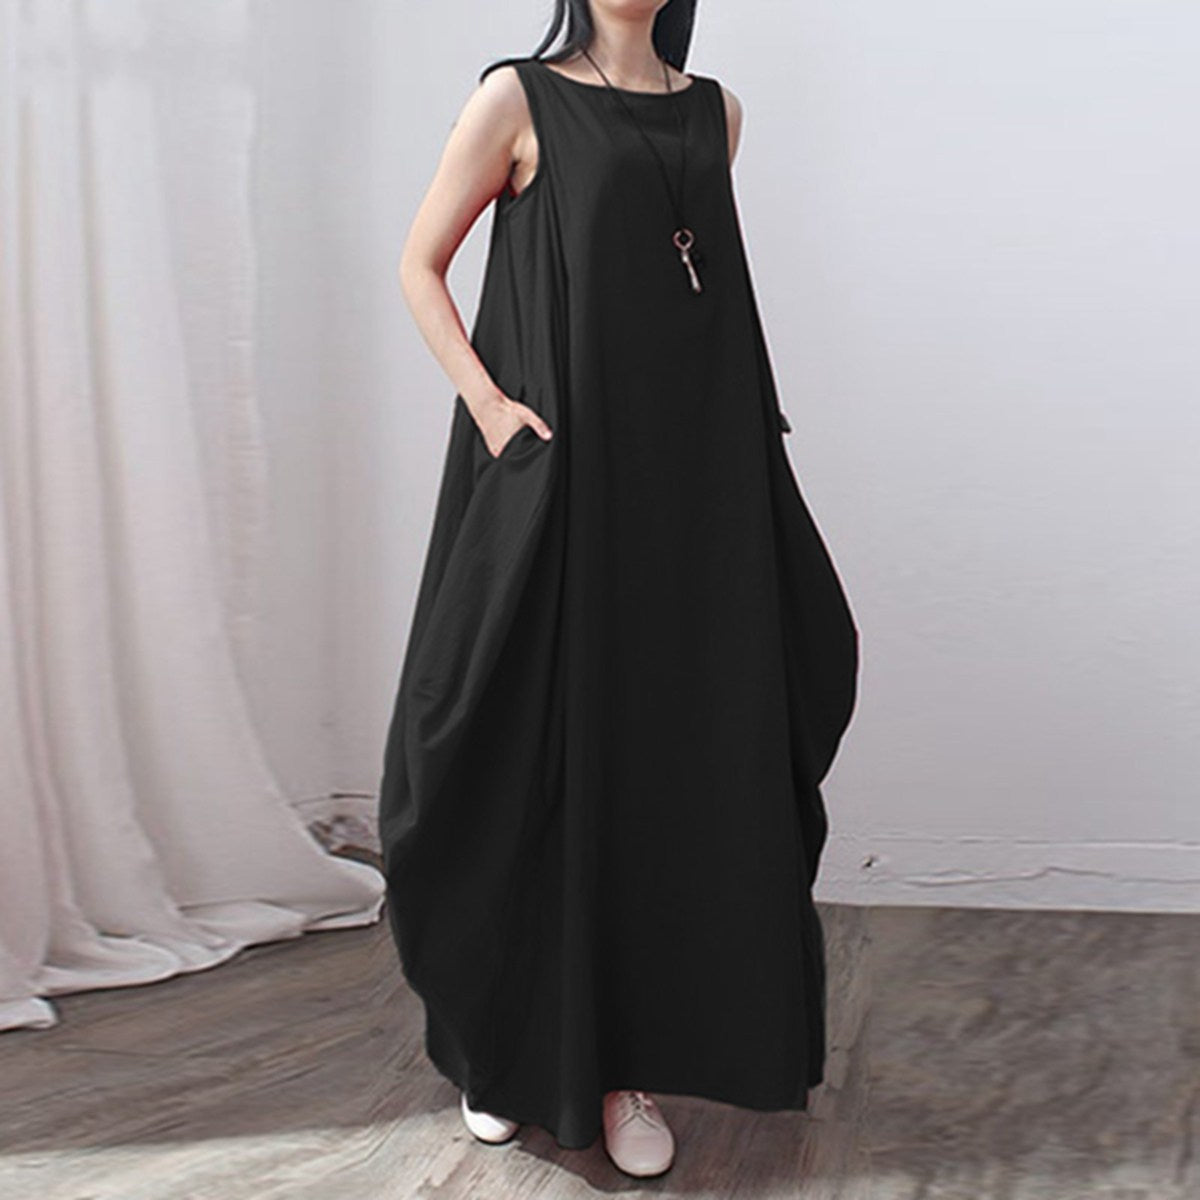 d0ff2f43efc4 Pregnant Sexy Sleeveless Long Maxi Dress Summer Maternity Dresses Blusas Clothes  For Pregnancy